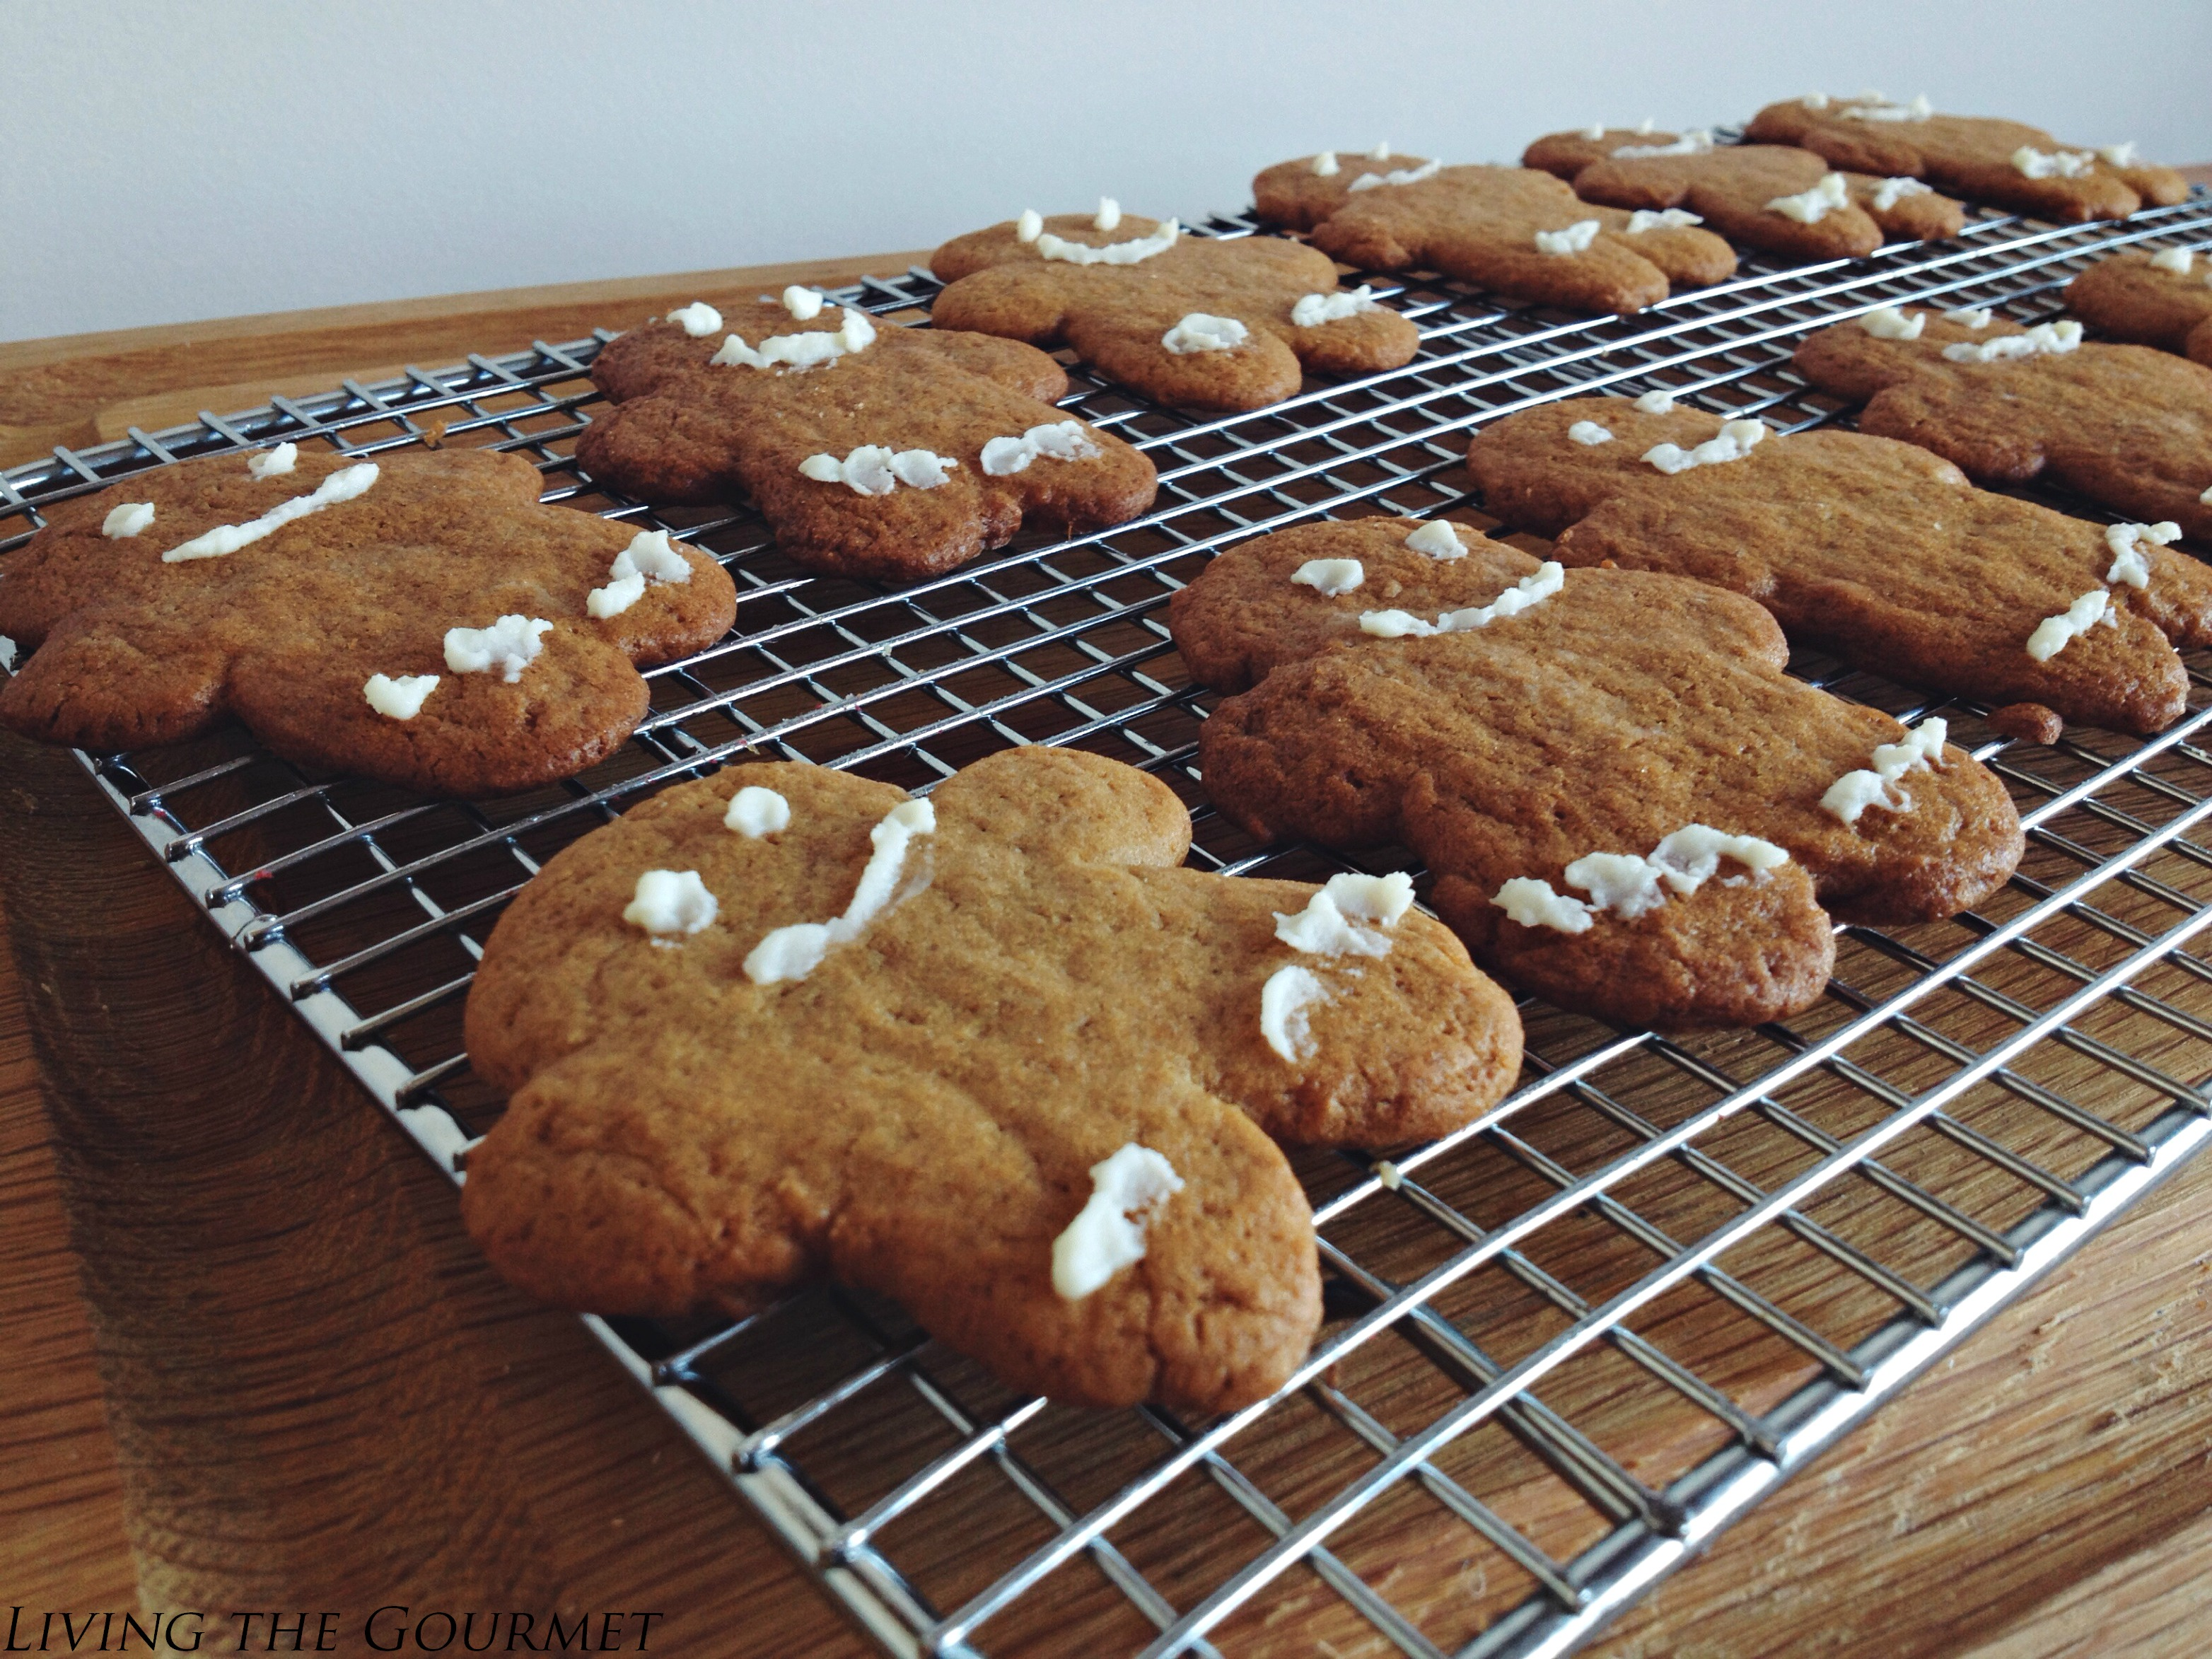 Living the Gourmet: Fresh Ginger Cookies